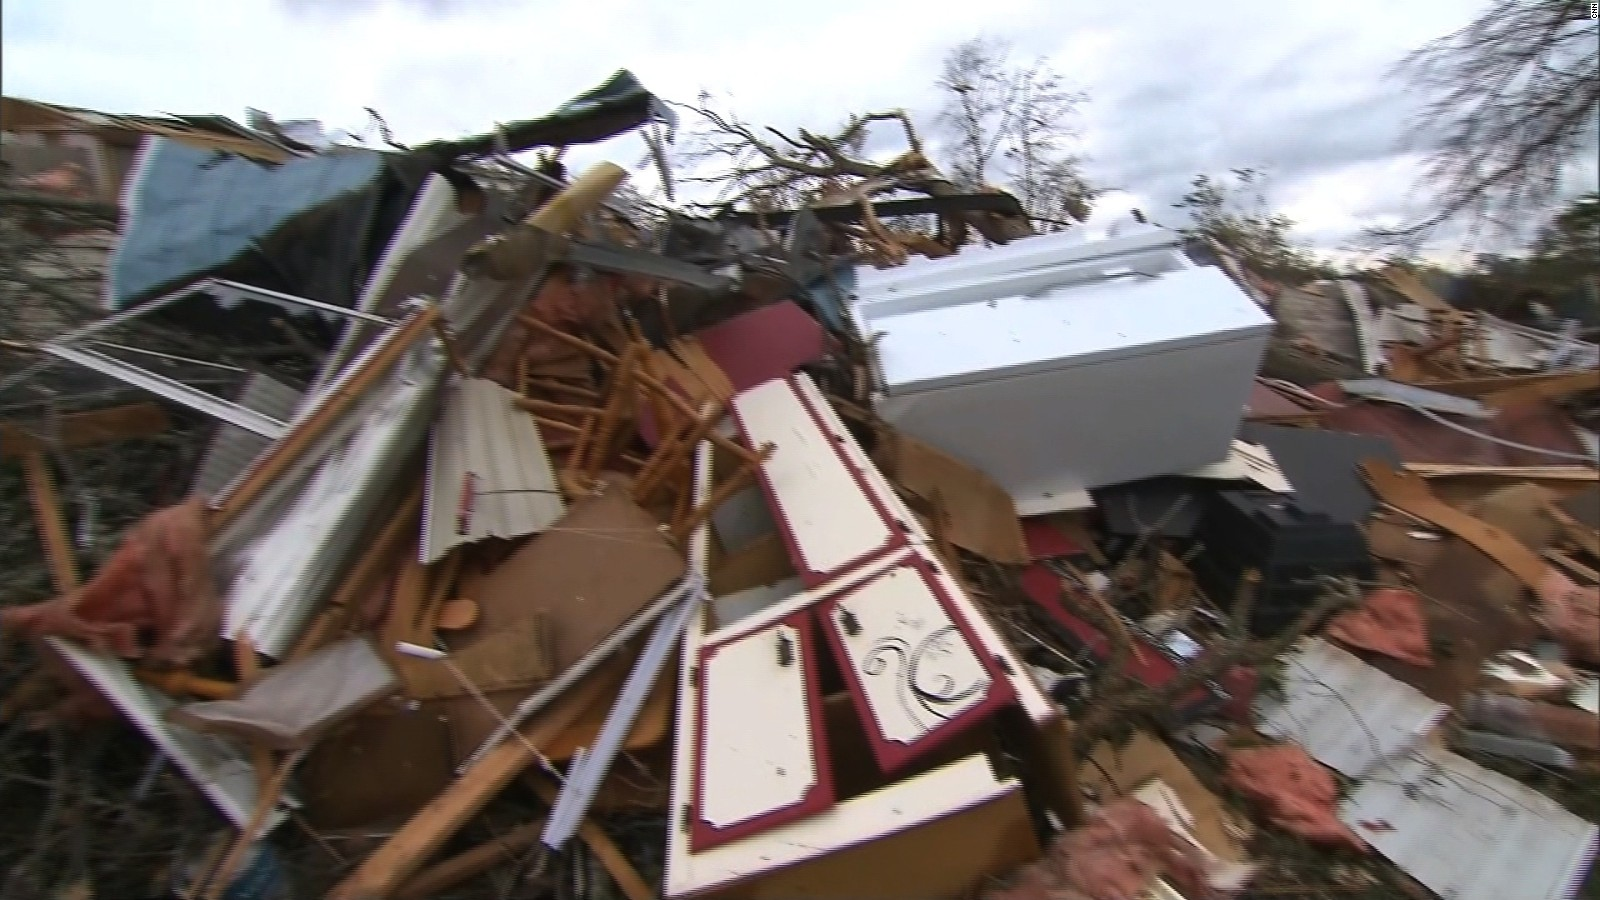 Georgia Storm Deaths 7 Killed In Trailer Park